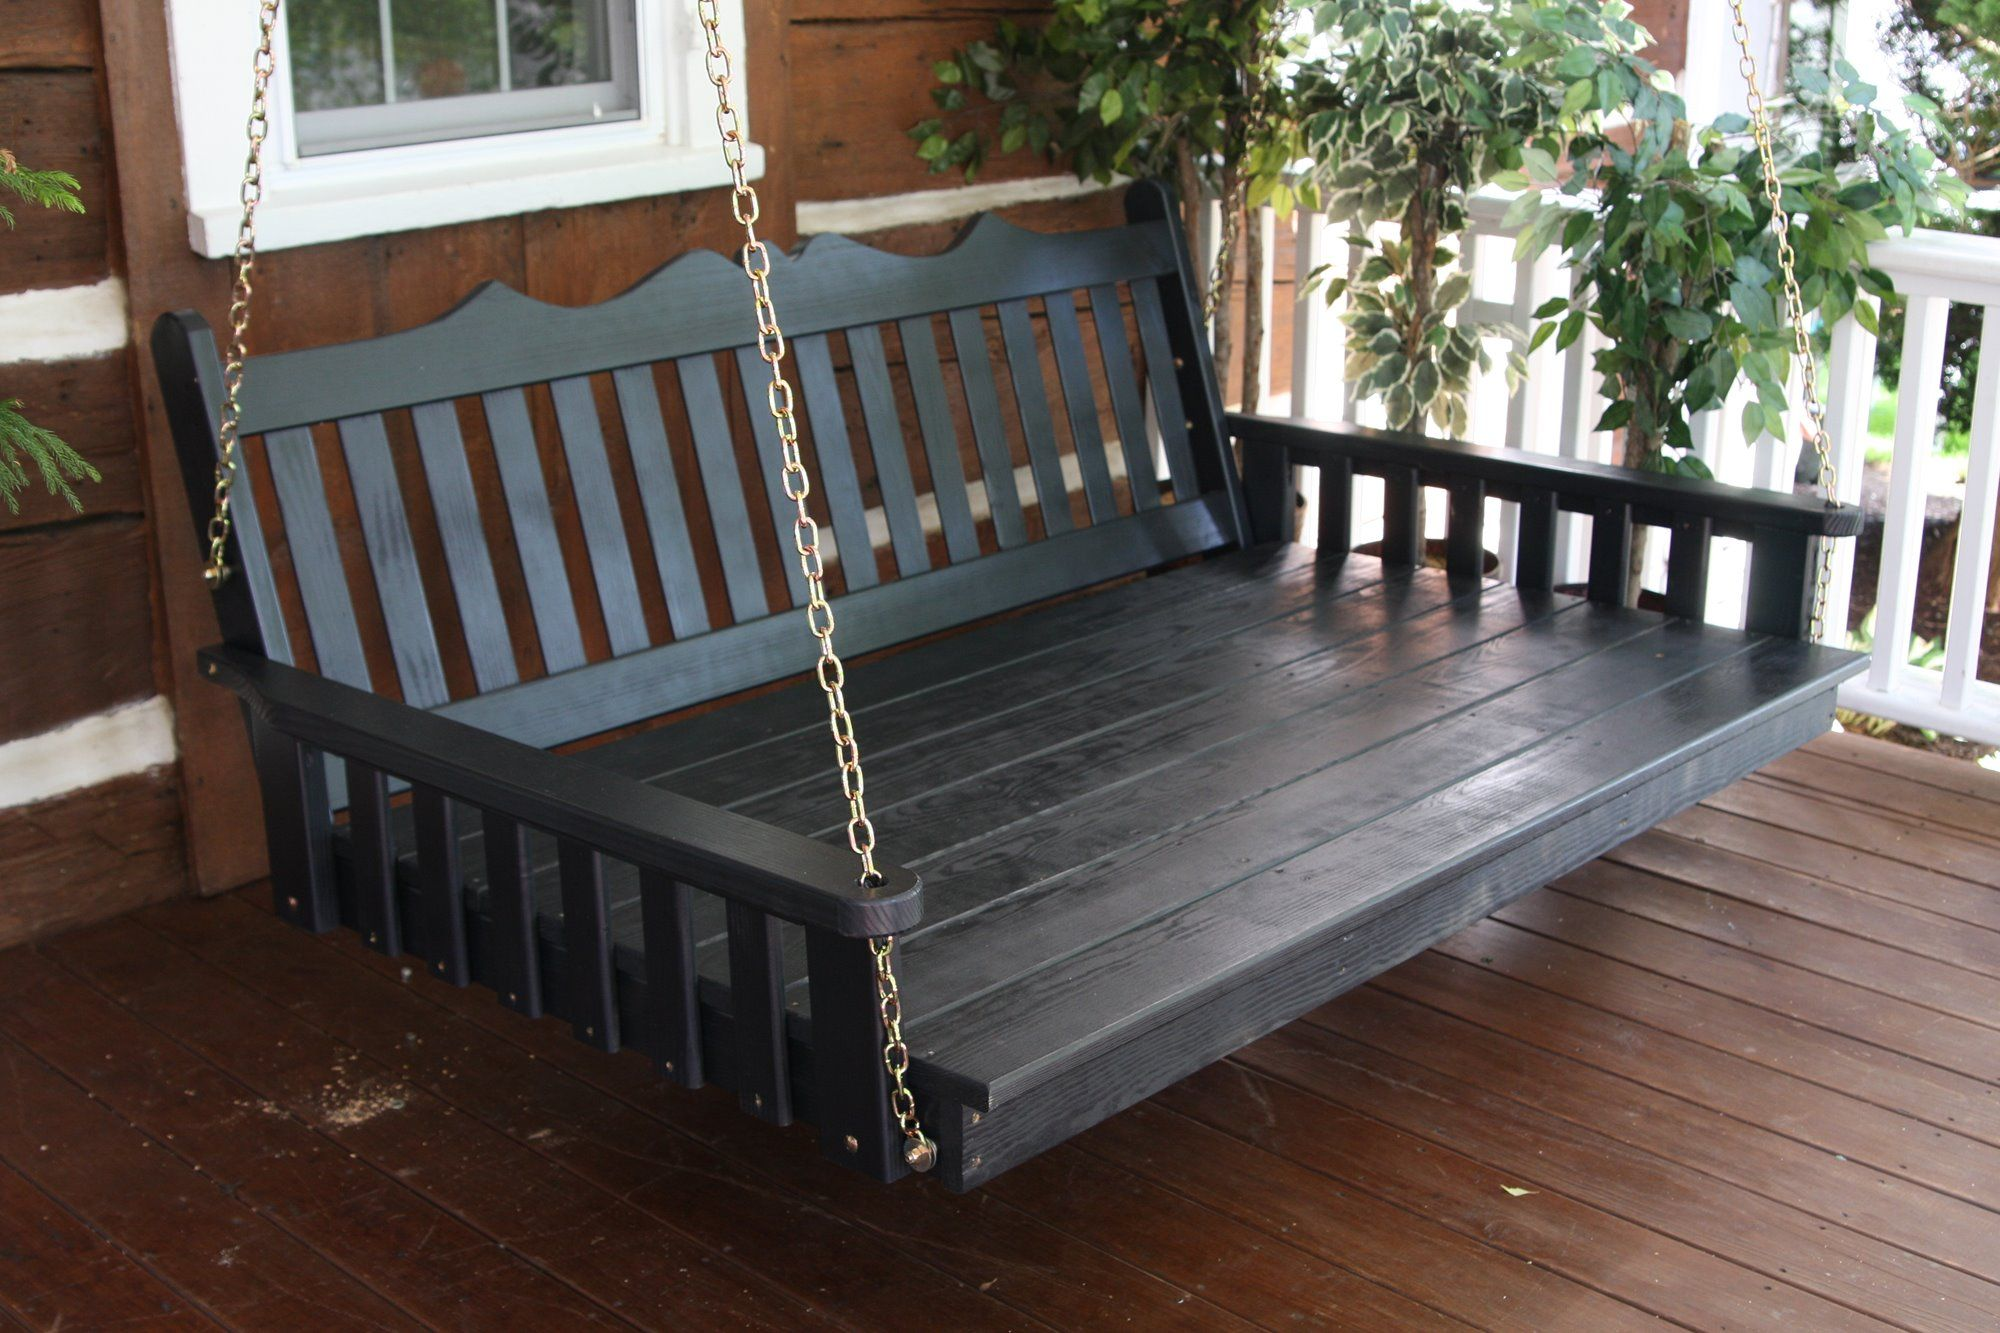 Outdoor 4 Foot Royal English Garden Porch Swing *Unfinished Pine* Amish Made USA